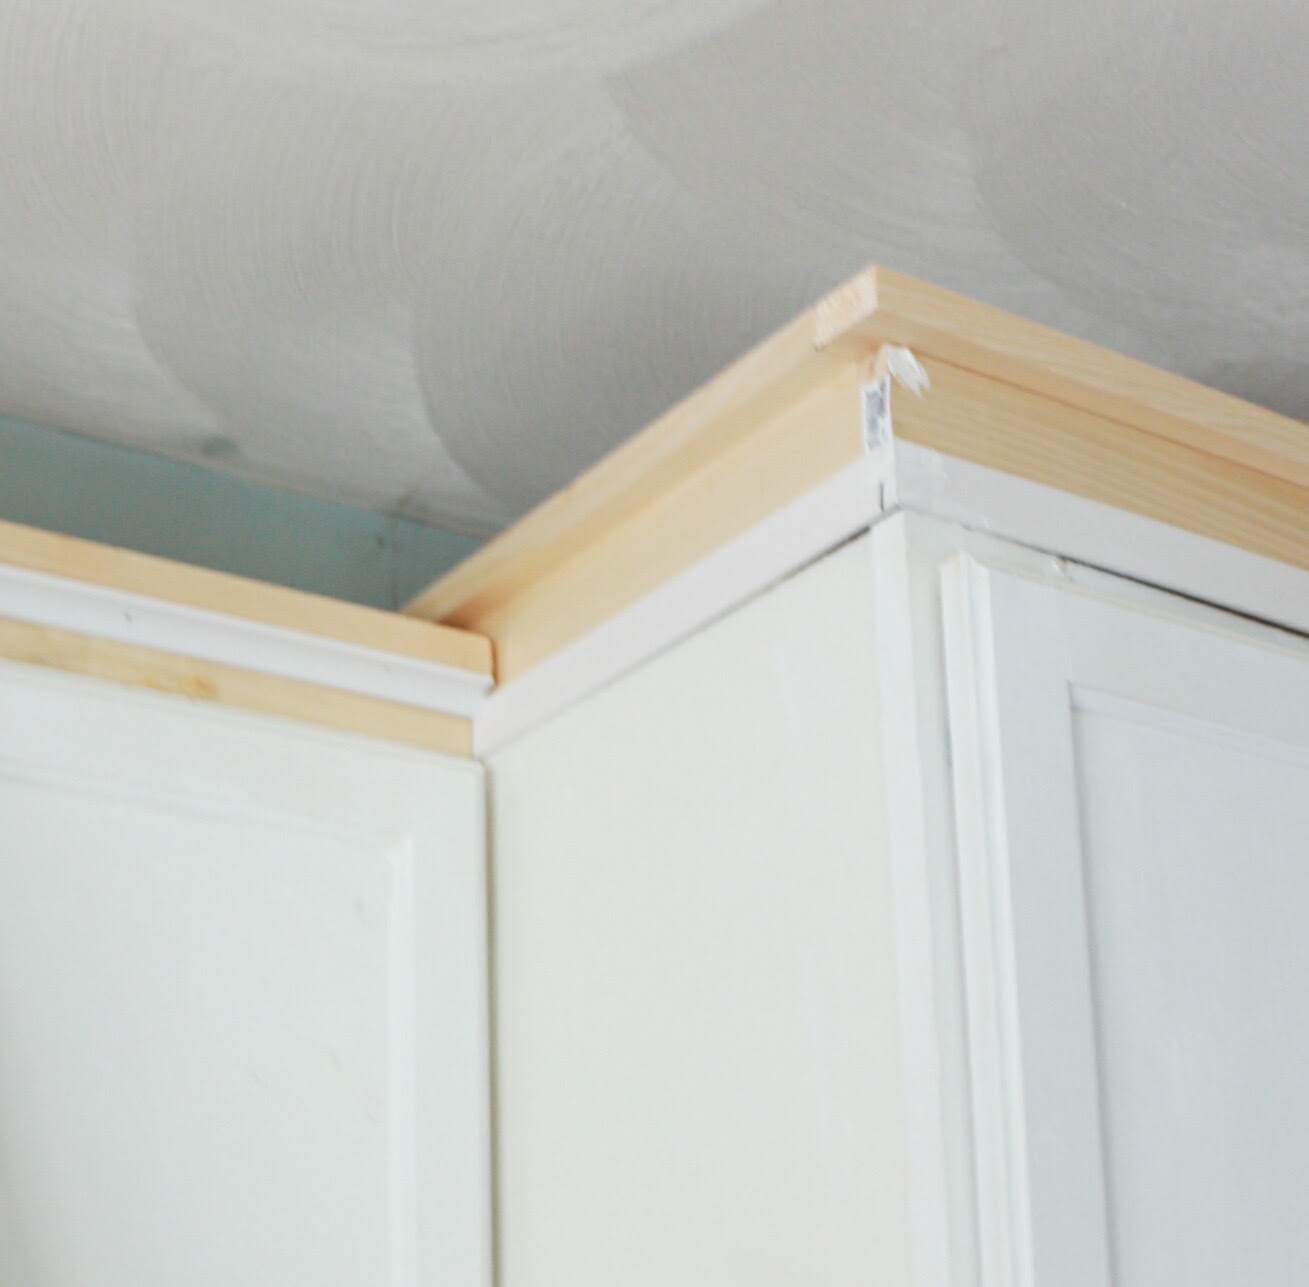 My DIY Kitchen: Cabinet Crown Molding, How To Fake The Look Without The  Fuss   FEARFULLY U0026 WONDERFULLY MADE